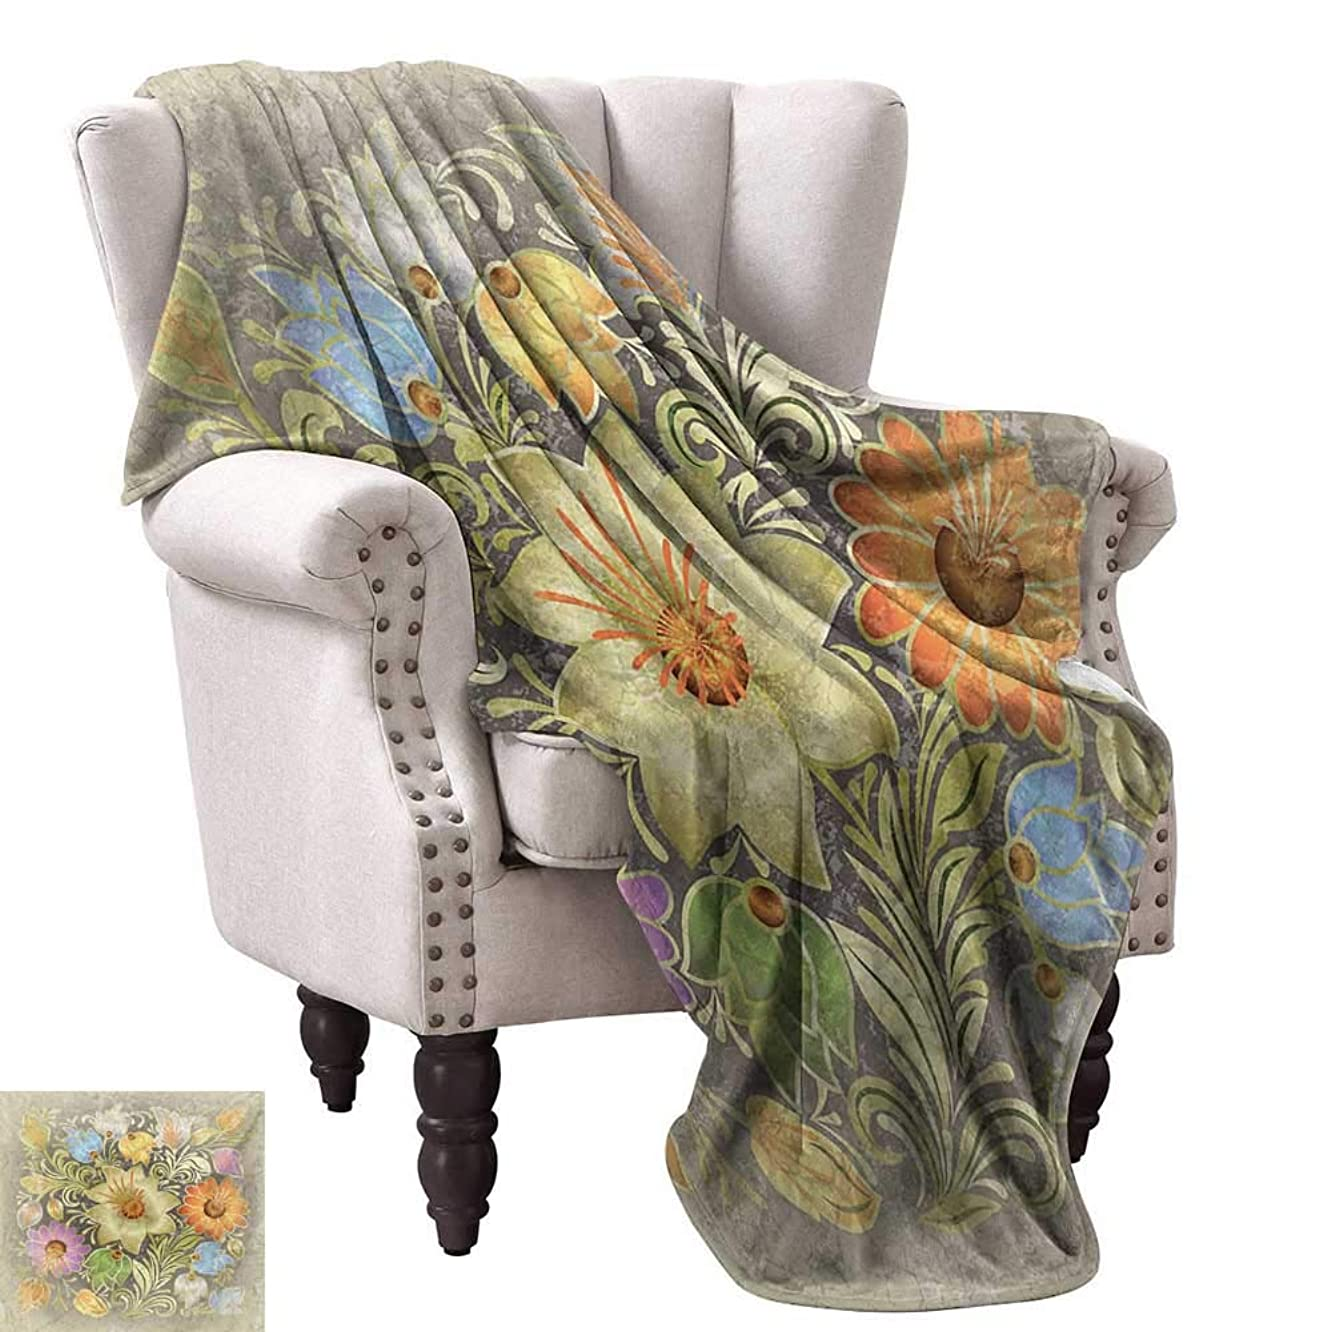 WinfreyDecor Grunge Reversible Blanket Ornate Aged Floral Bouquet Composition Over Antique Style Marble Setting Bohemian Print Traveling,Hiking,Camping,Full Queen,TV,Cabin 50